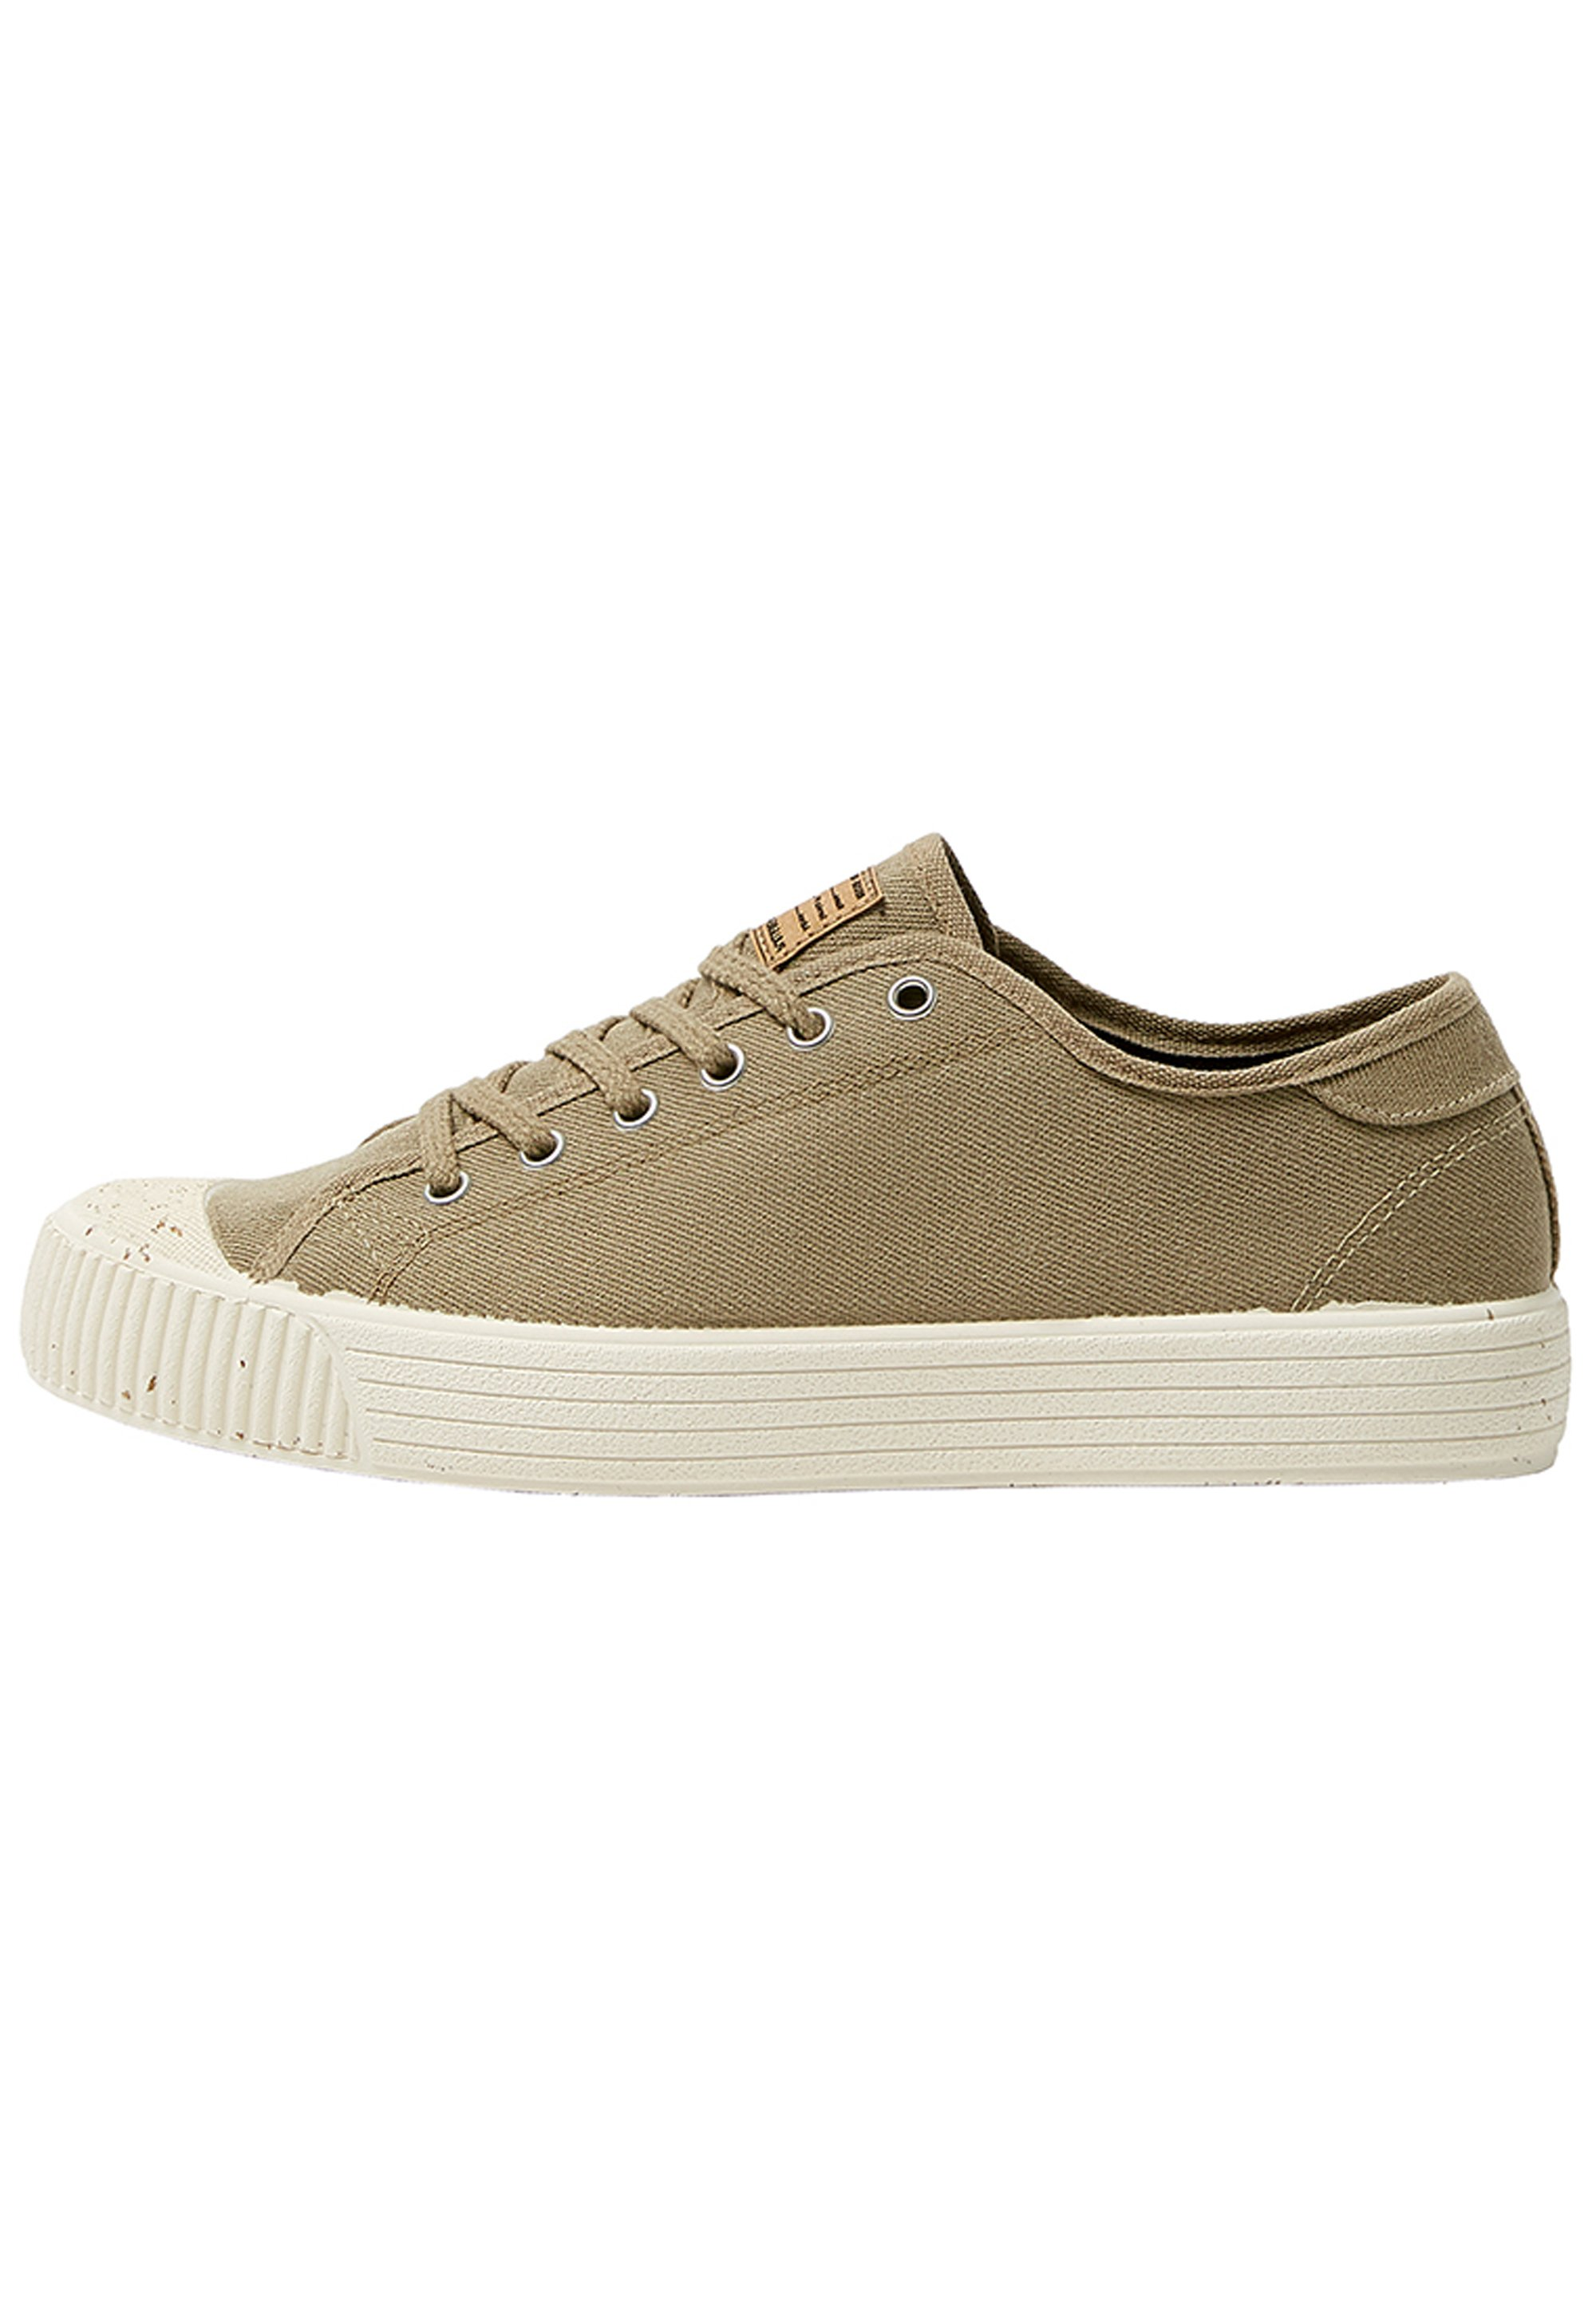 Sneakers sand